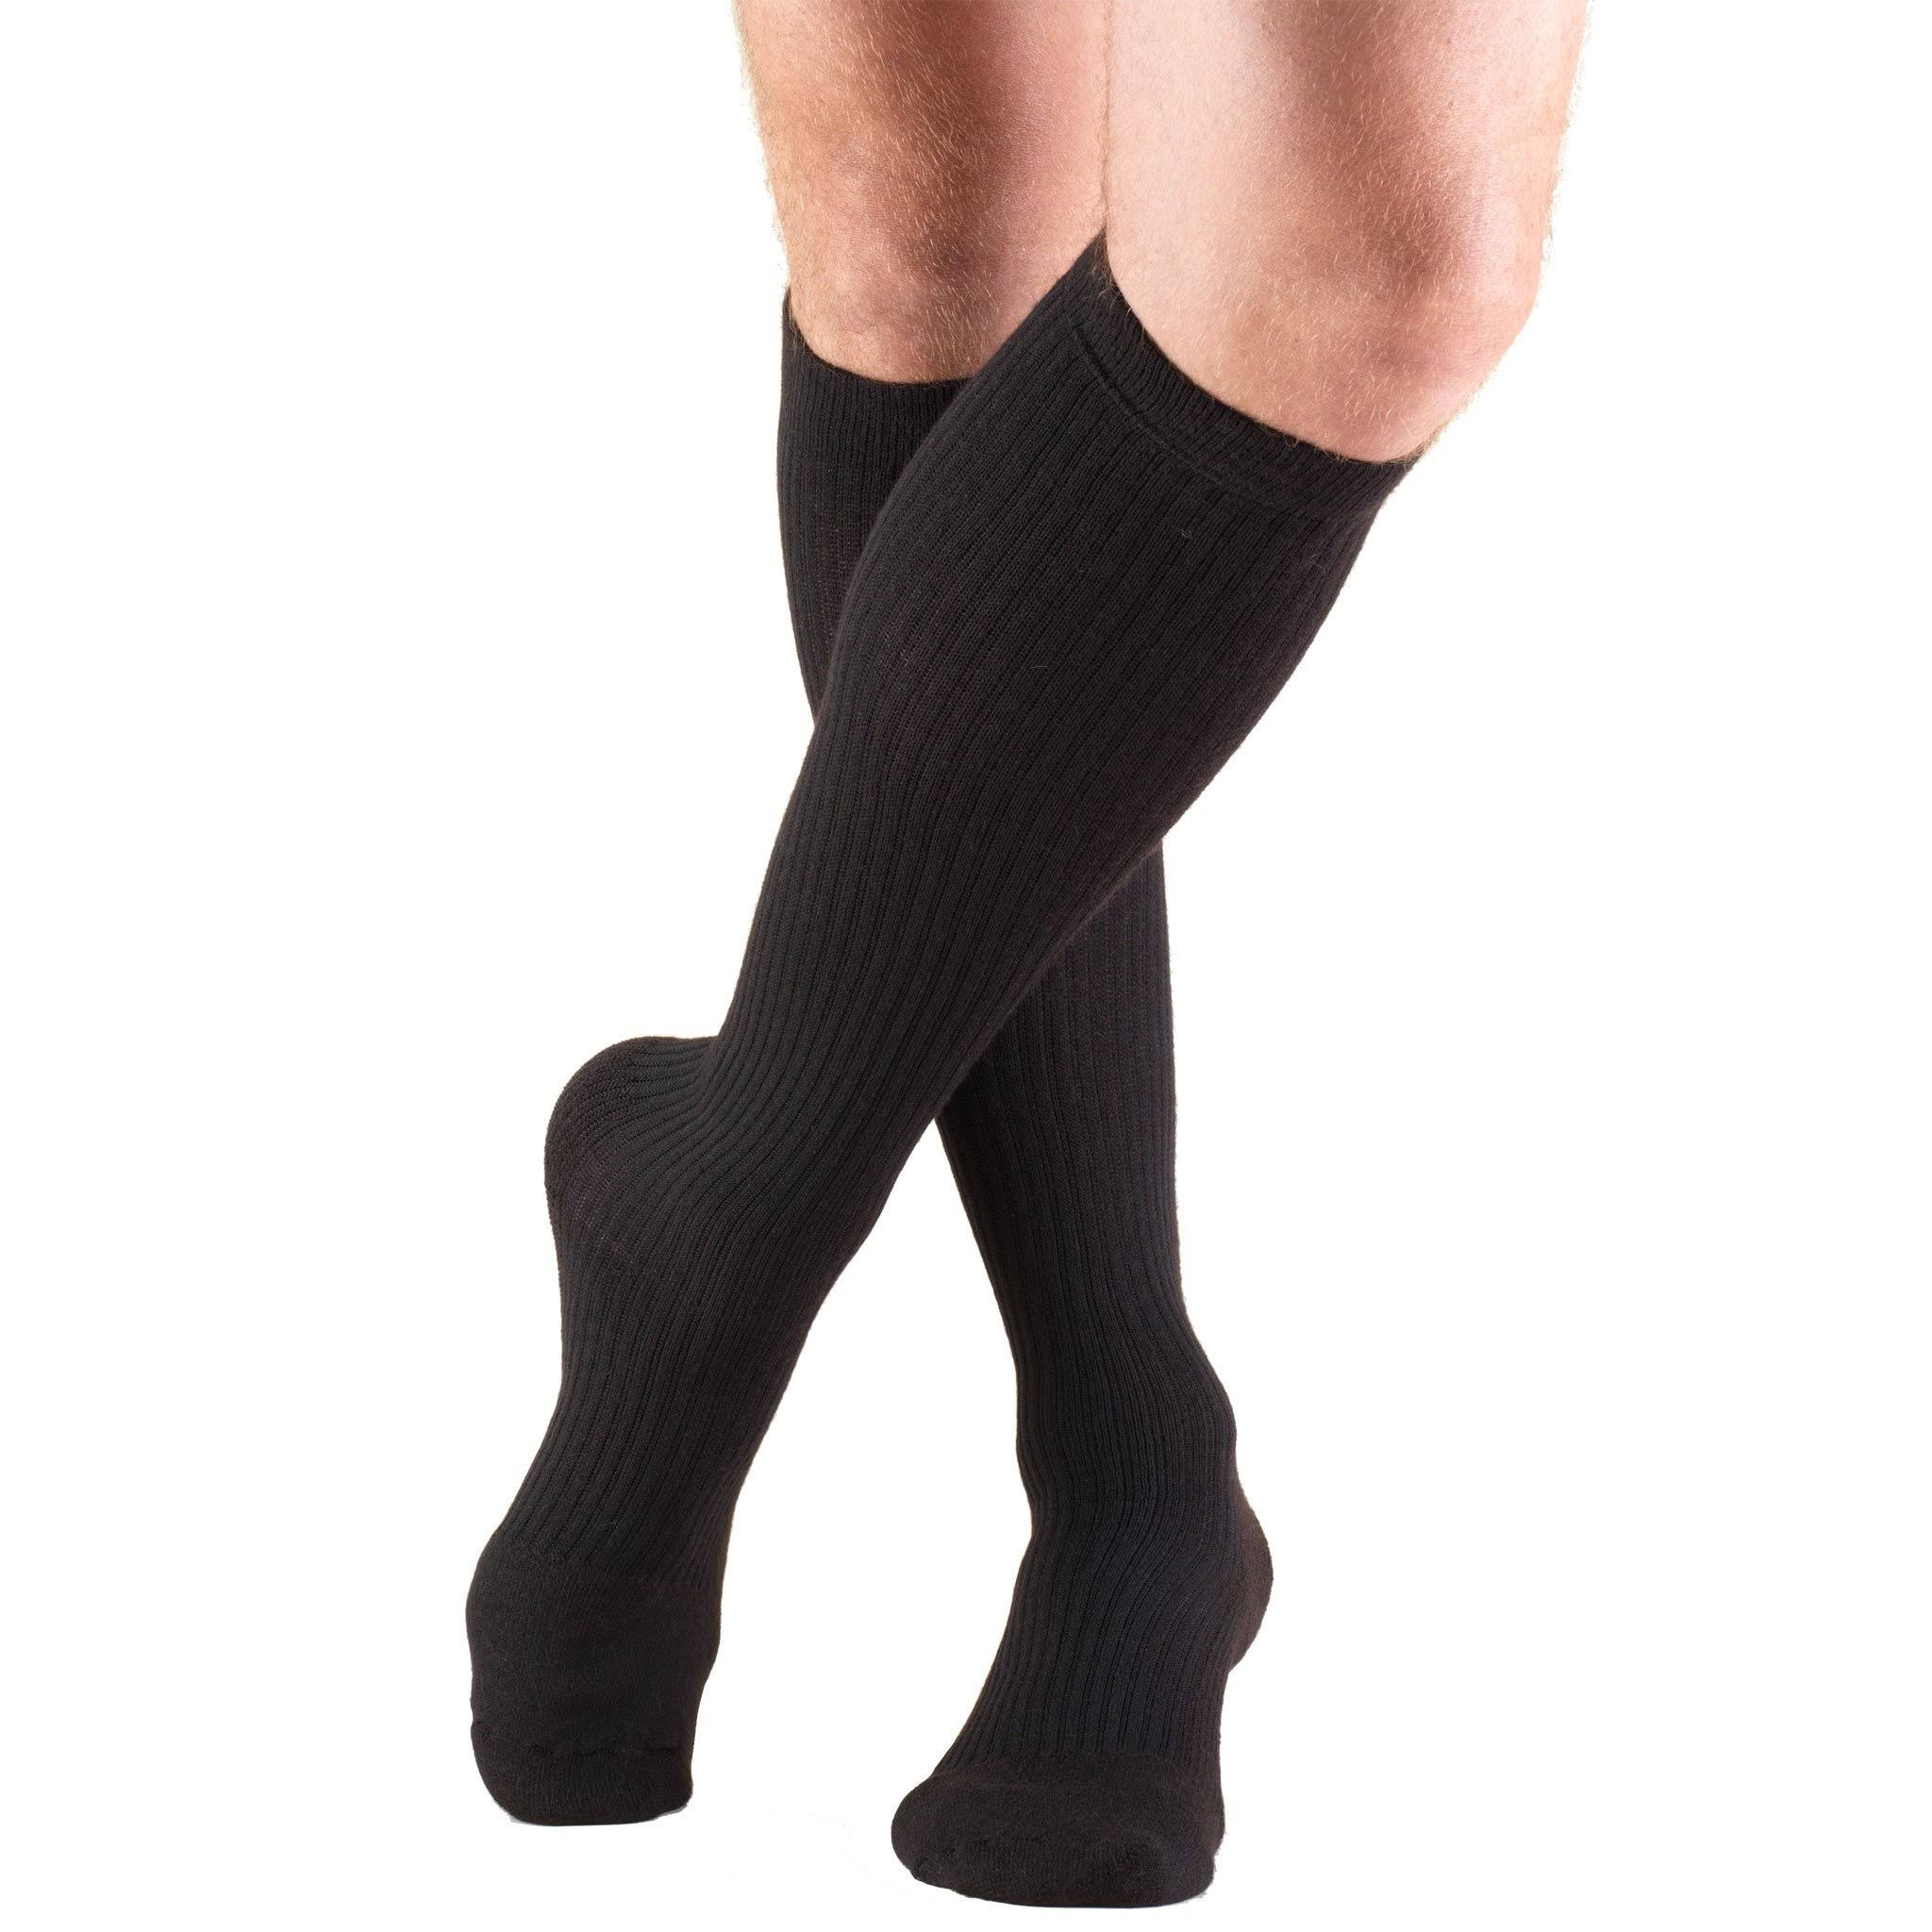 Truform Men's Knee High Cushioned Athletic Support Compression Socks - Black, 15-20mmhg, X-Large